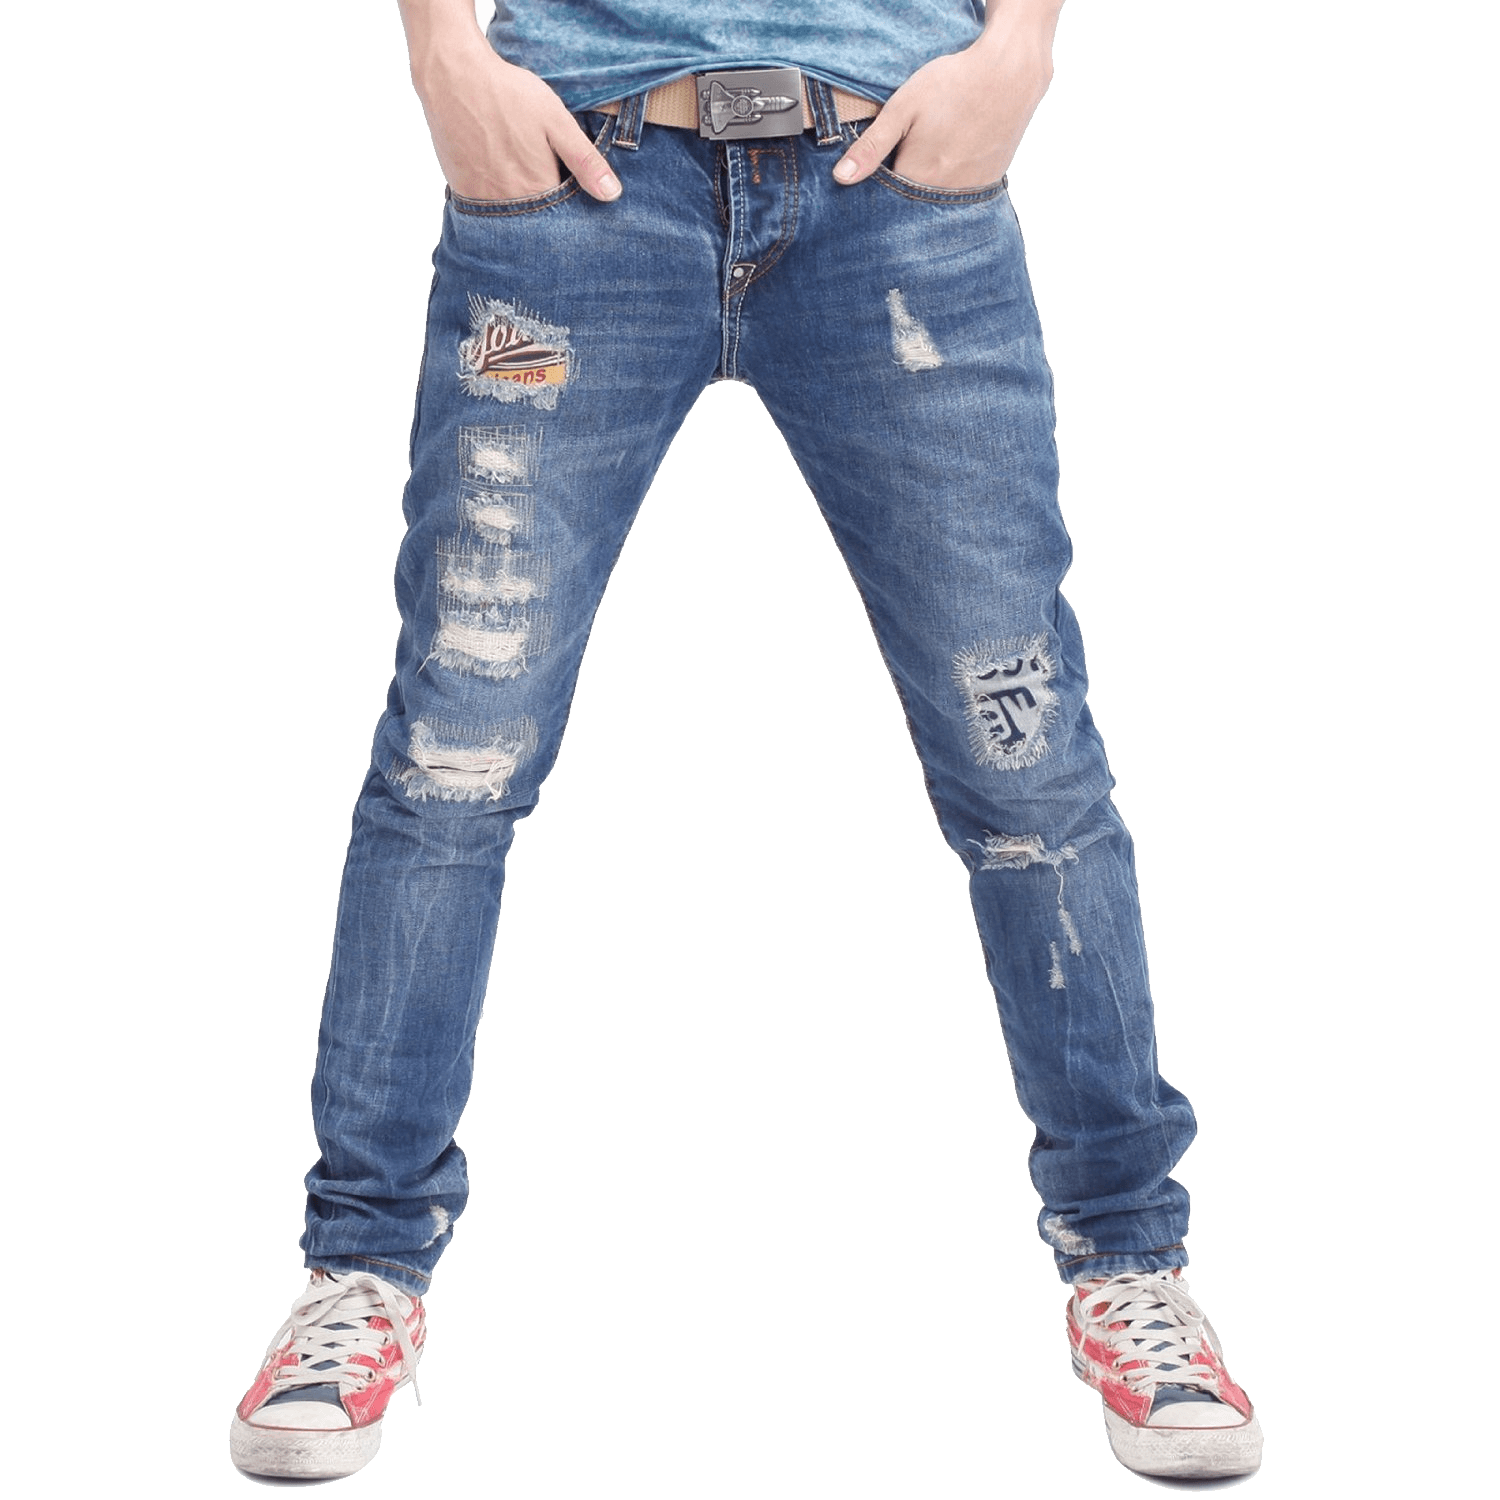 Jeans PNG - 16037